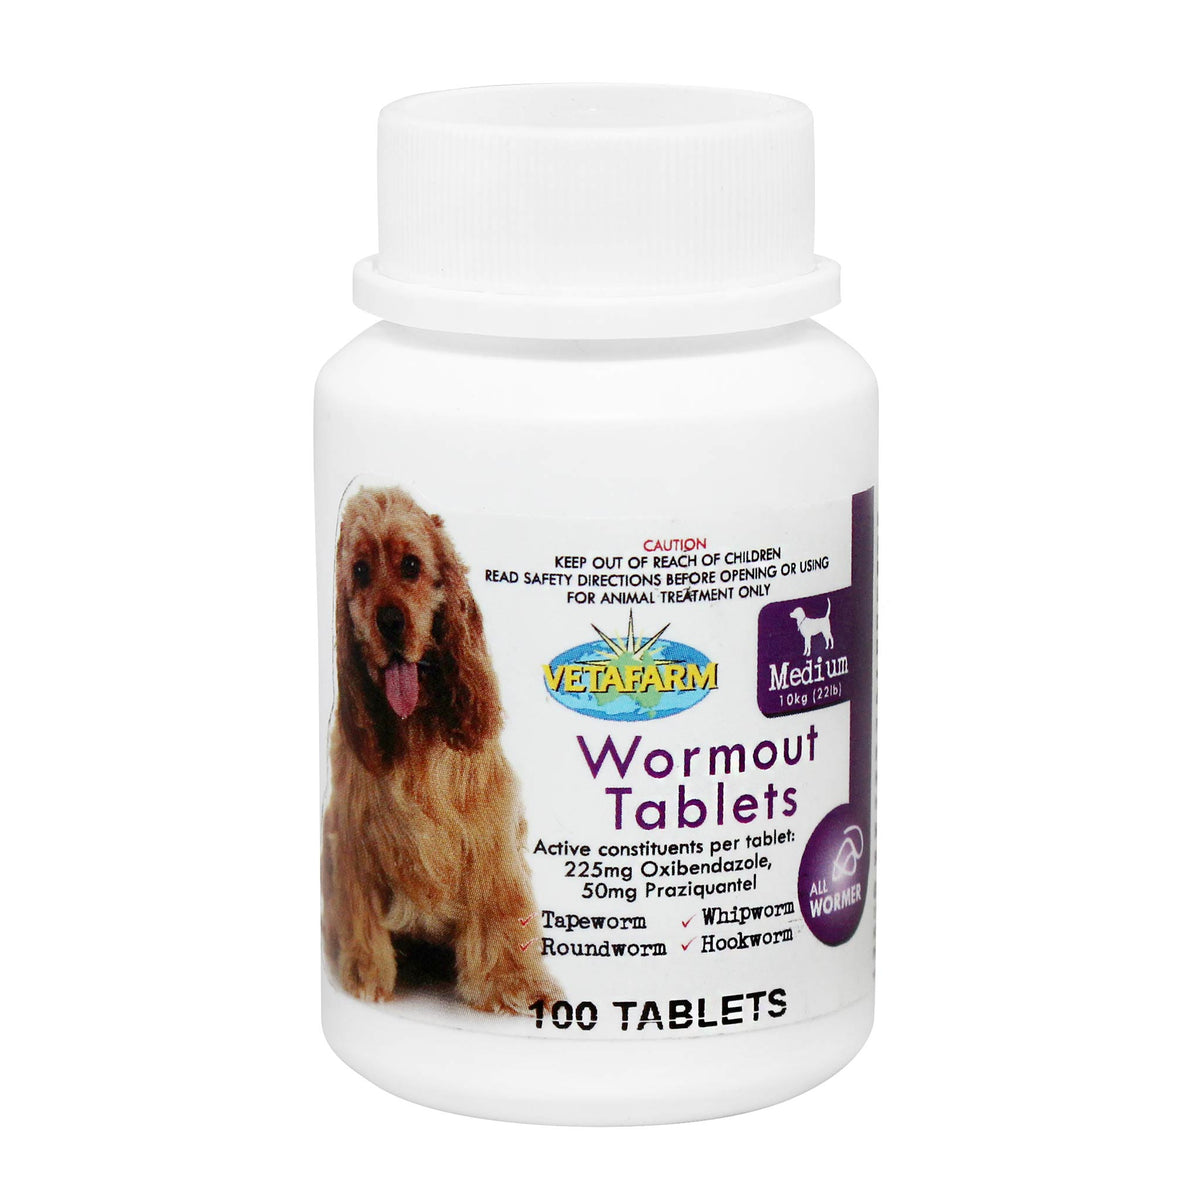 Wormout Tablets for Dogs - EXPORT ONLY